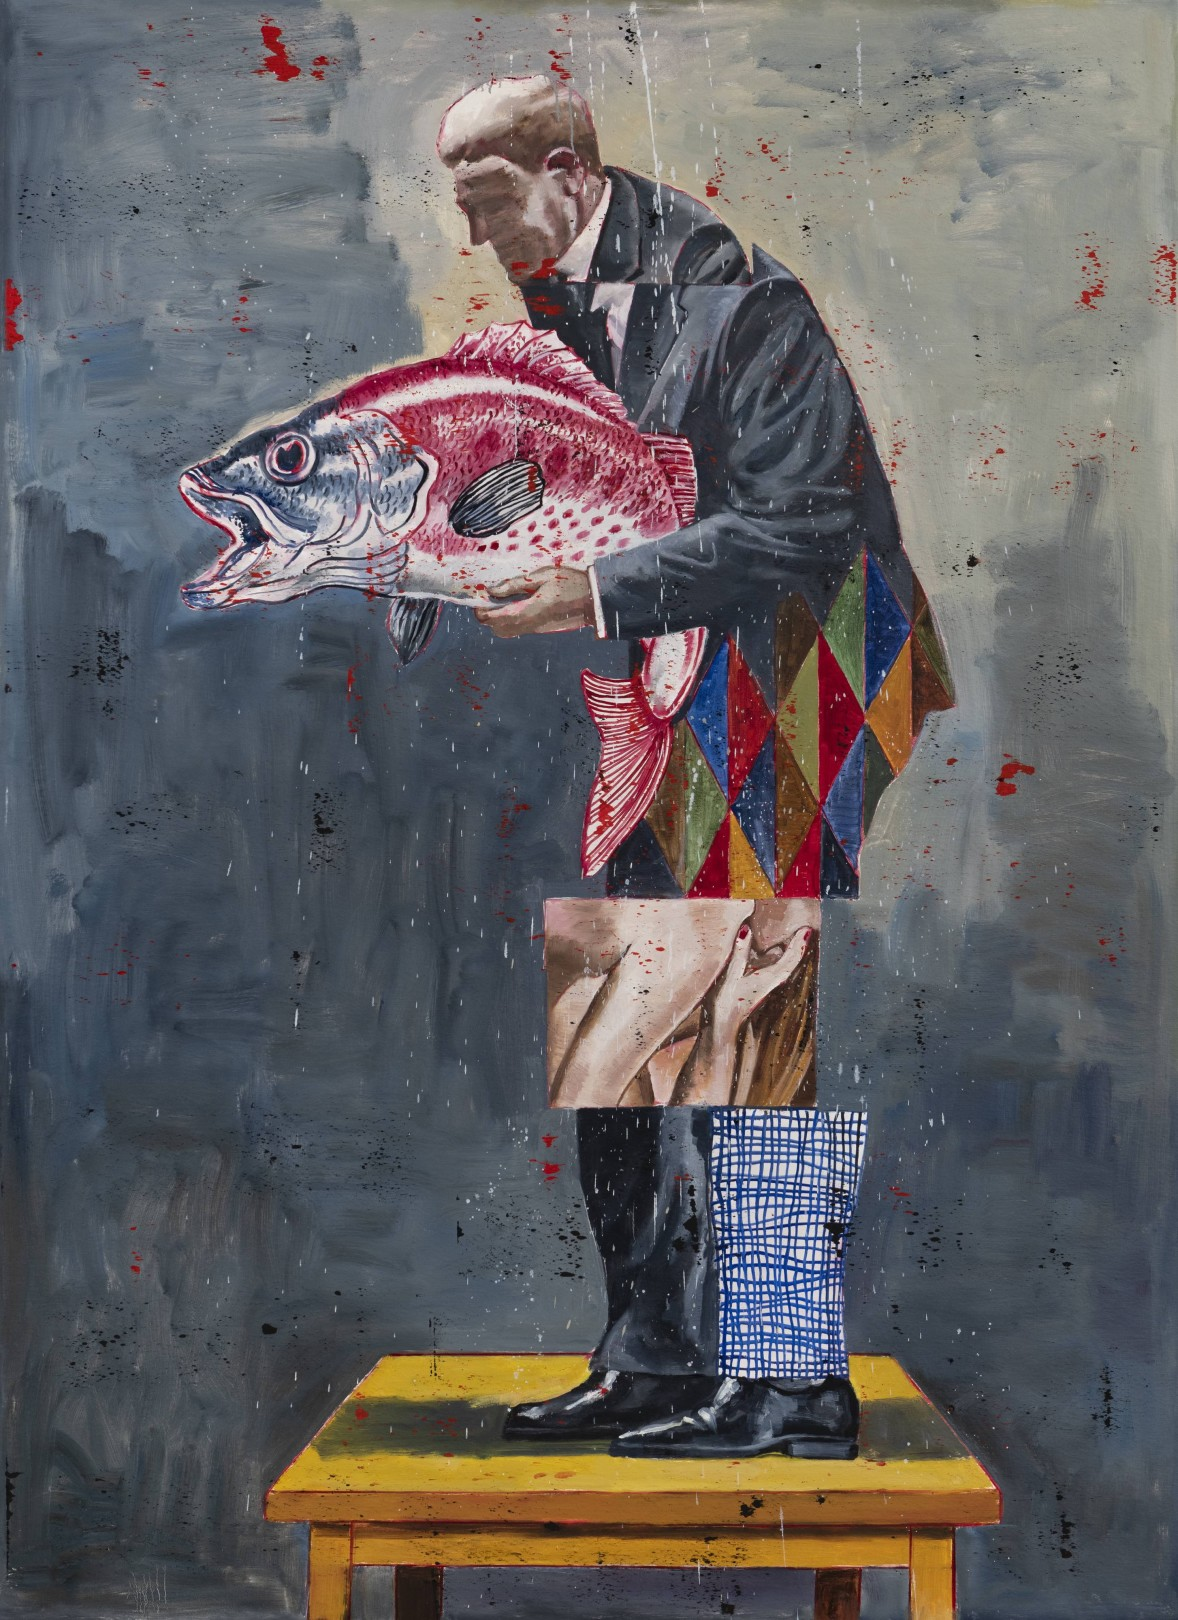 Nicky Nodjoumi Early Stage of The Game, 2019 Oil on canvas 183 x 132 cm. / 72 x 52 in.